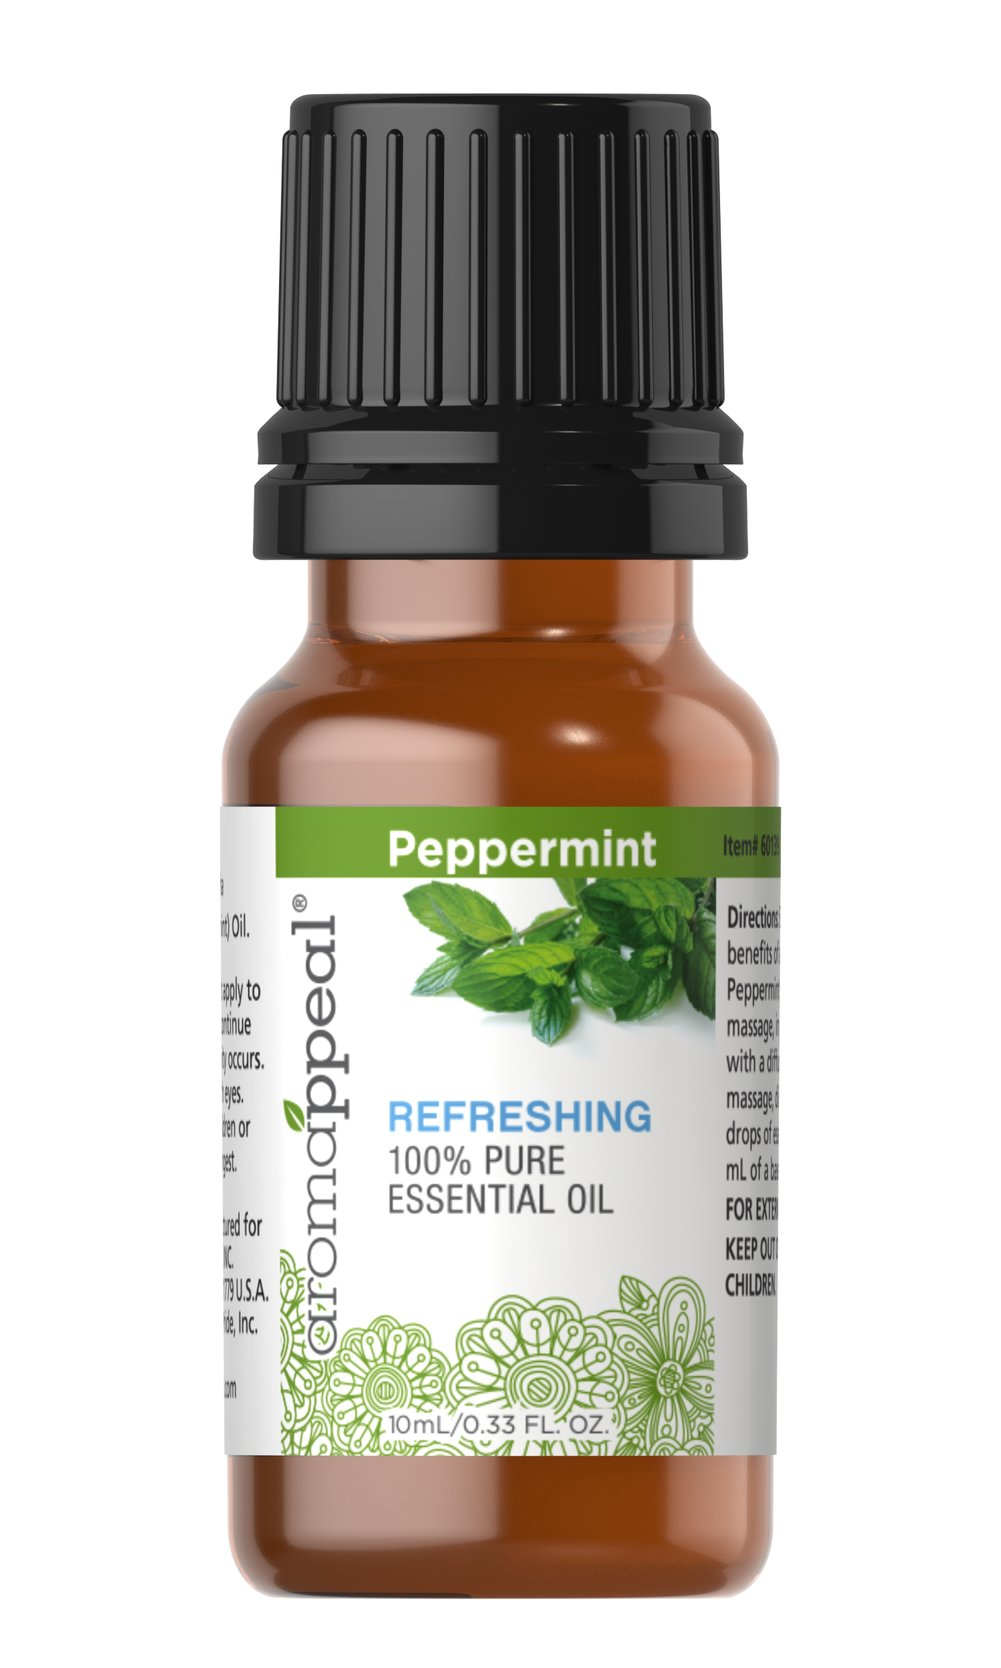 Peppermint 100% Pure Essential Oil Thumbnail Alternate Bottle View